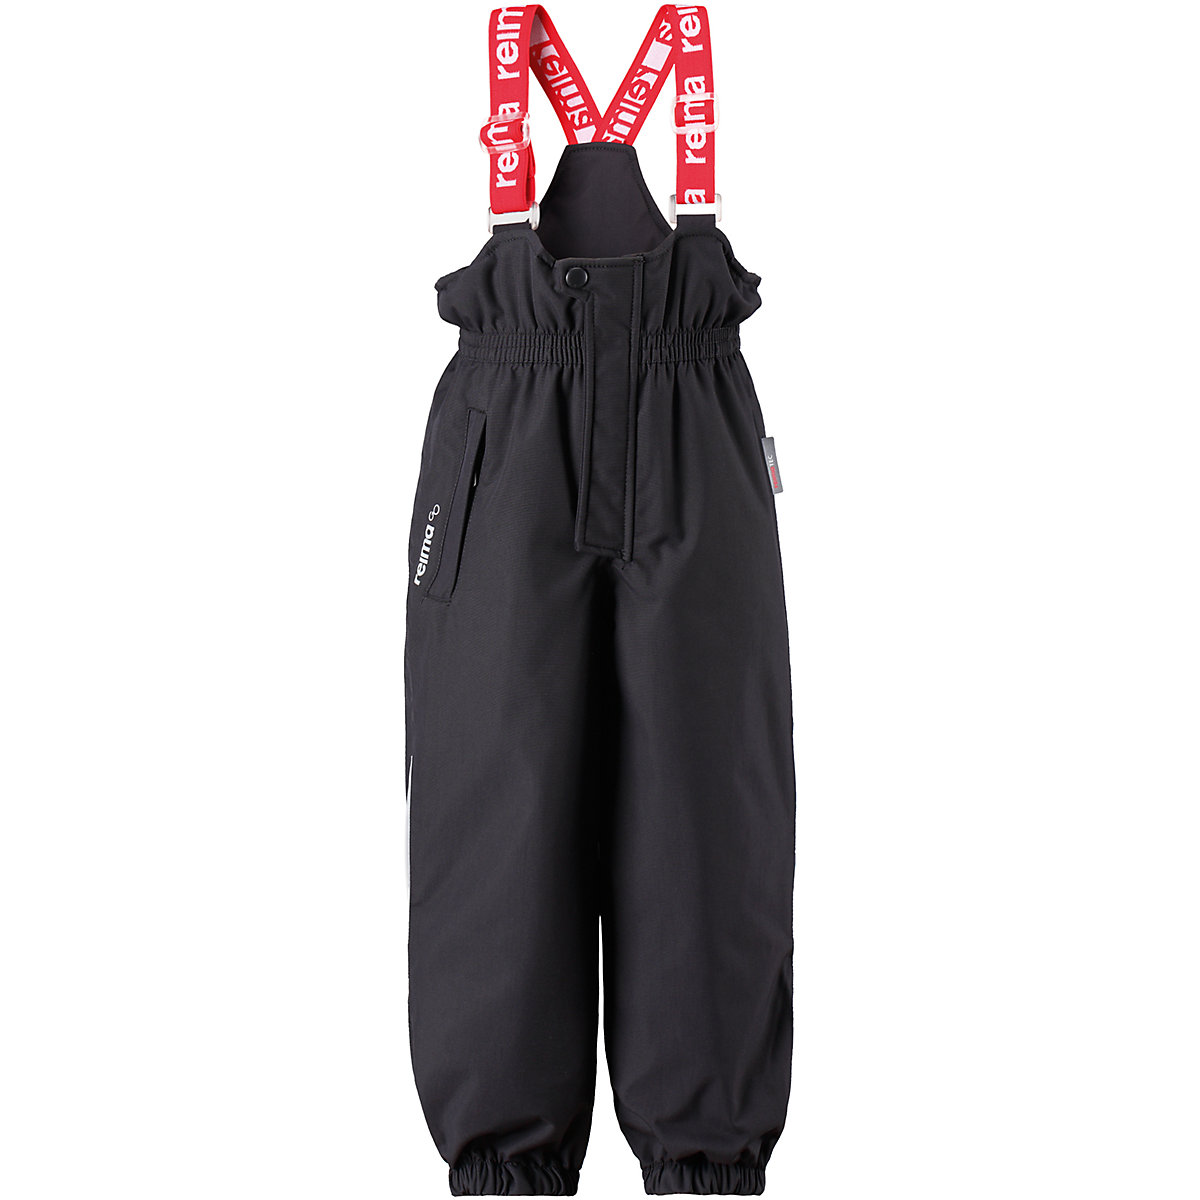 Pants & Capris Reima 8688798 for boys and girls polyester autumn winter autumn and winter new girls princess cotton shoes